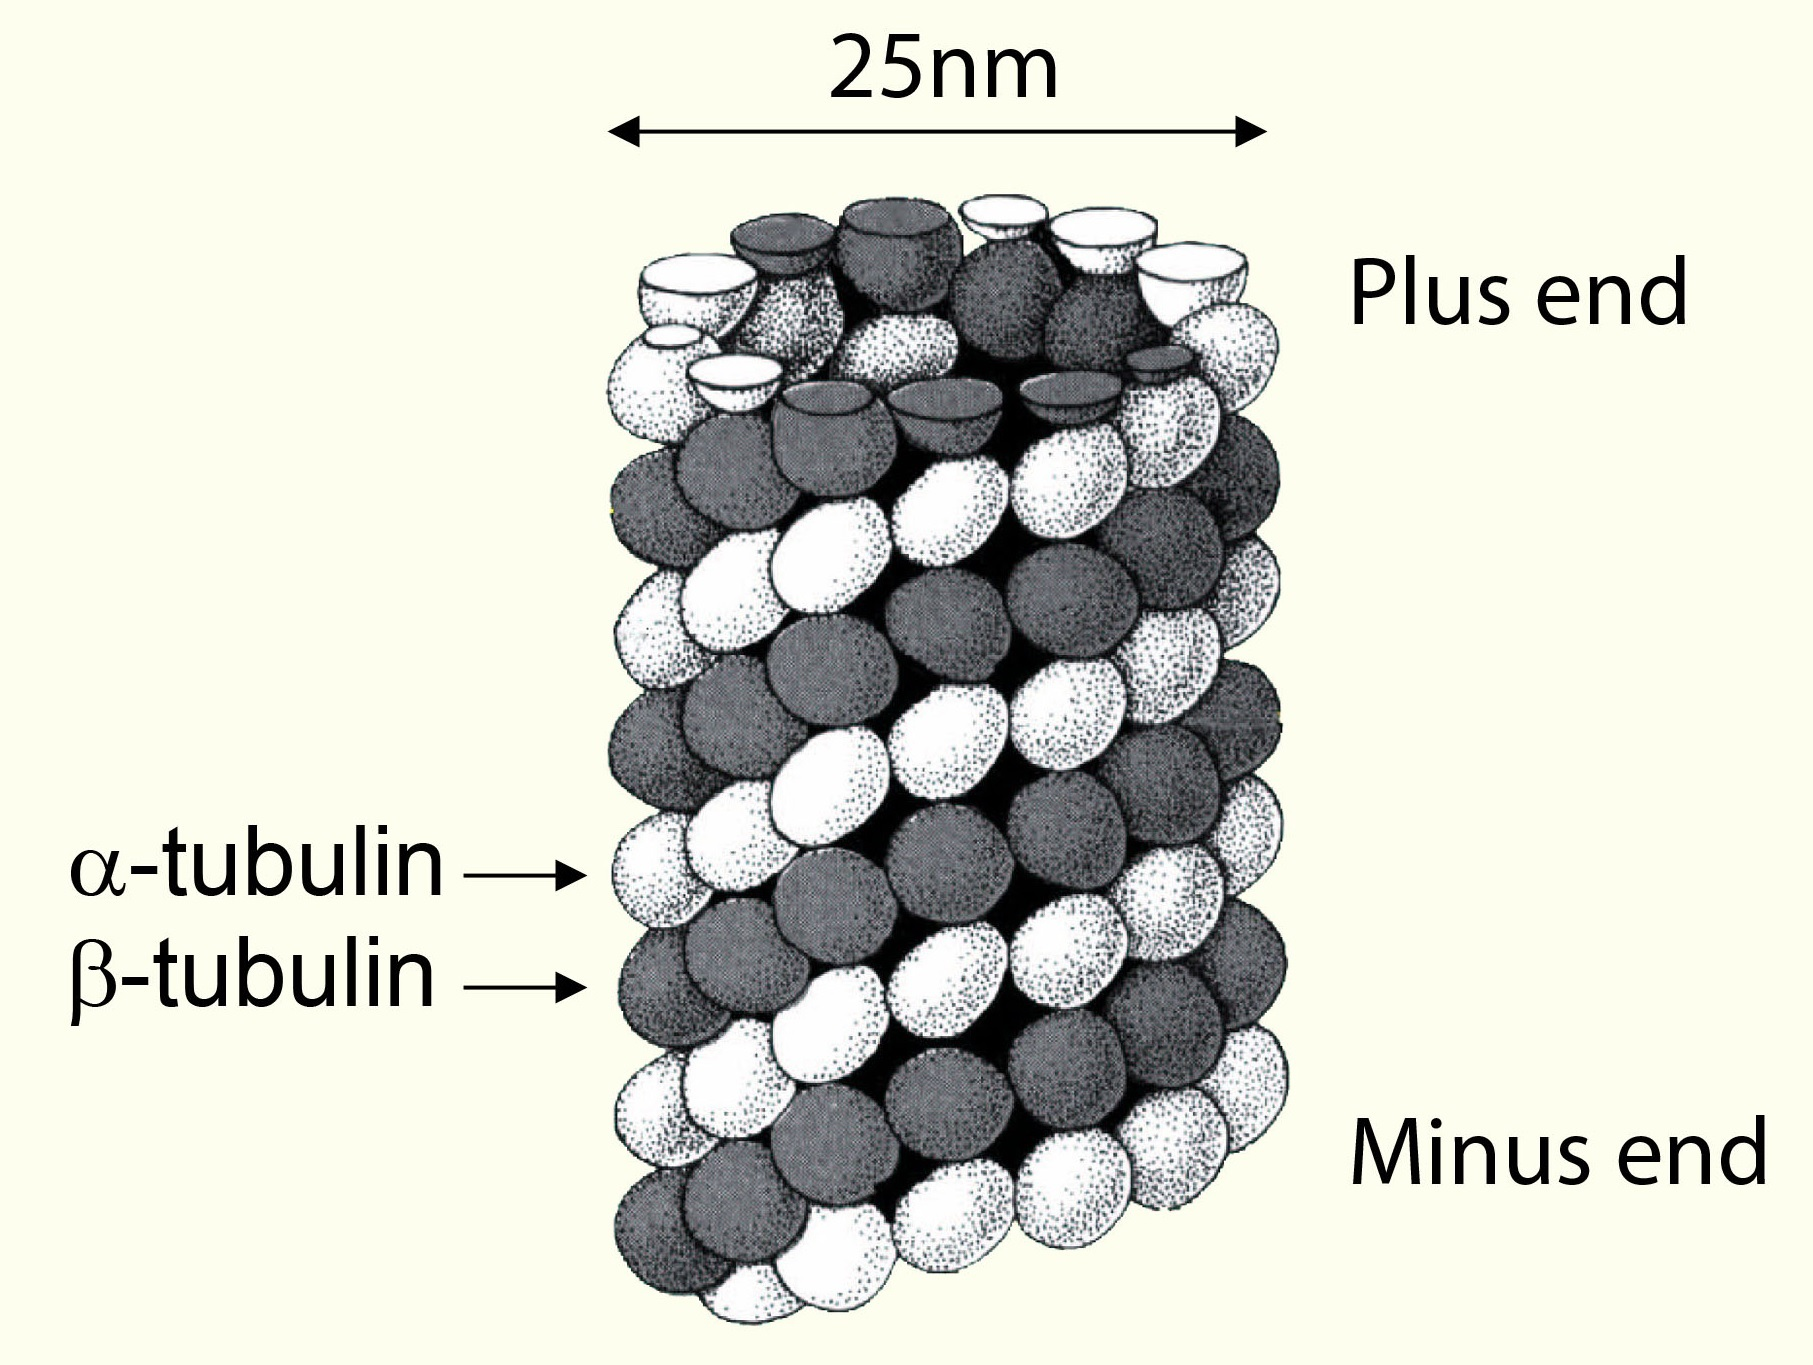 Tubulin / Microtubules: Structure and polarity of microtubules